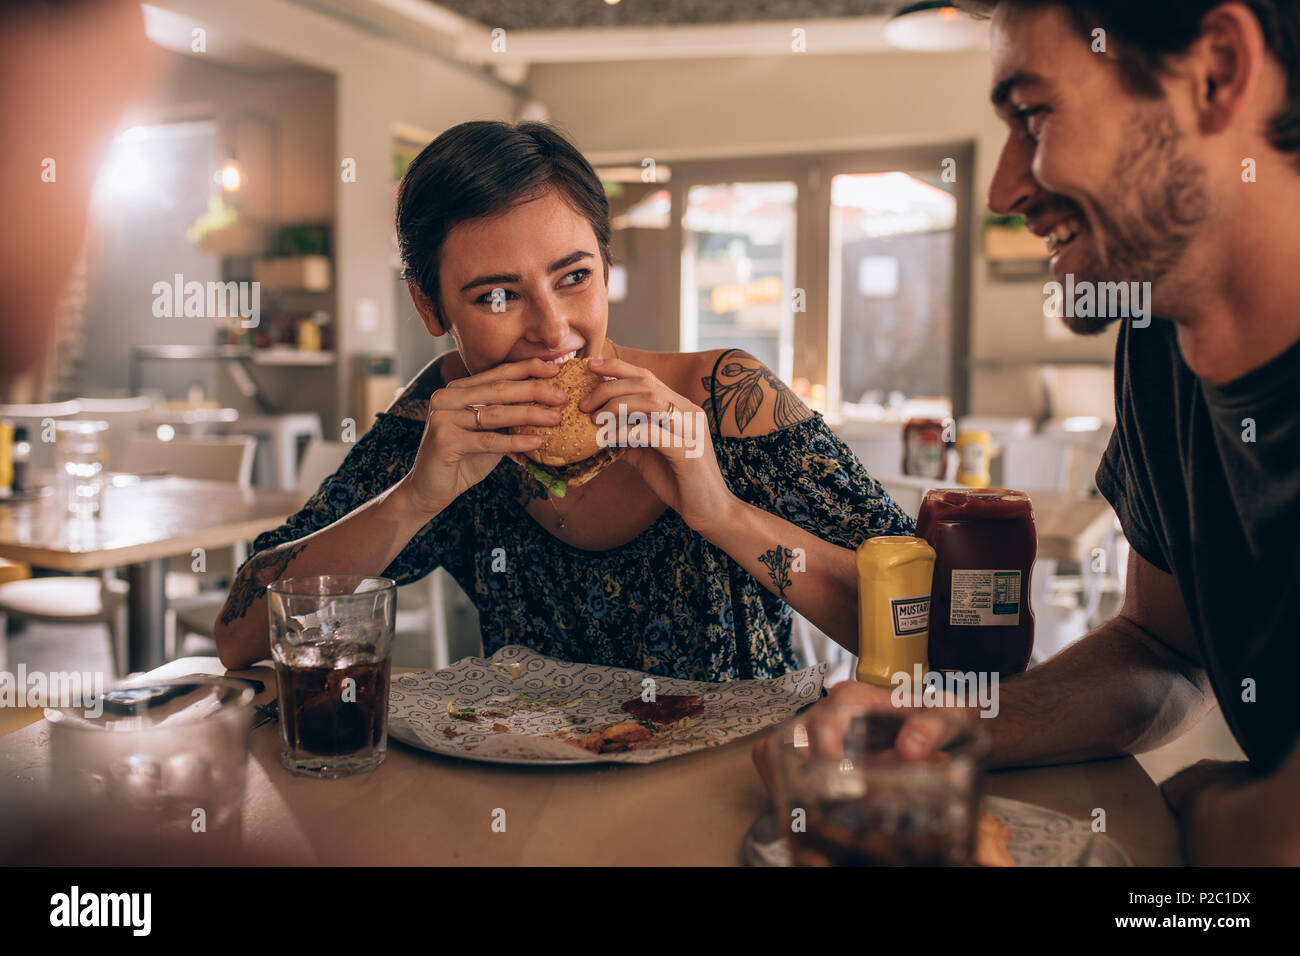 Young woman eating burger while sitting with friends at restaurant. Young people chatting and eating burger at cafe. - Stock Image